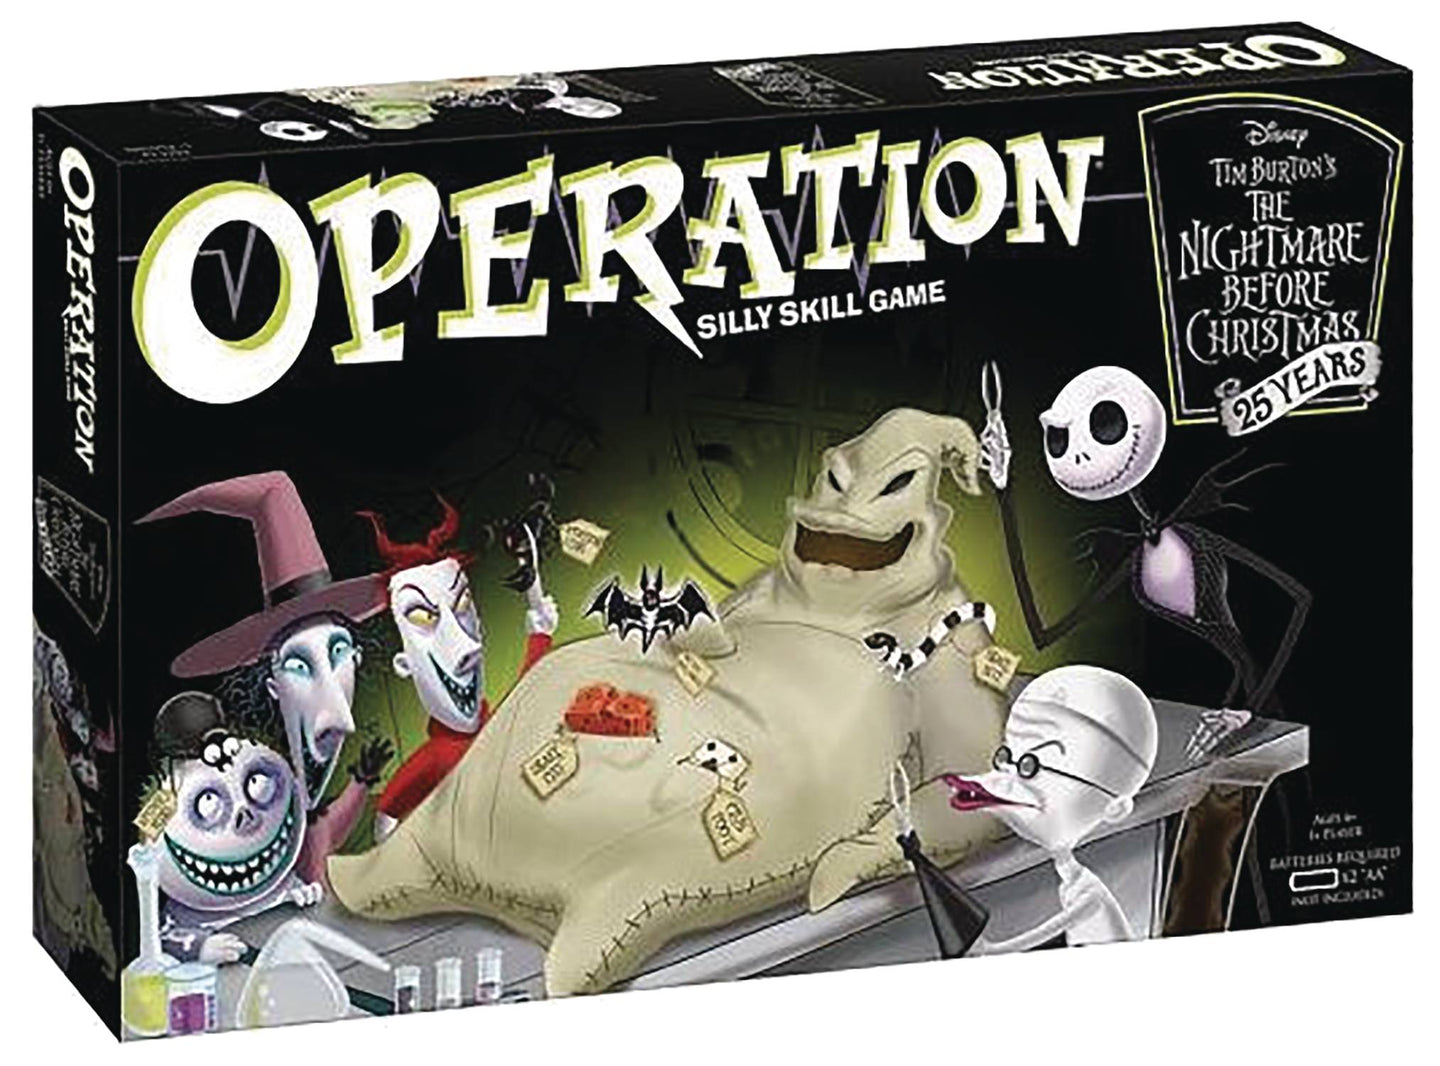 OPERATION NIGHTMARE BEFORE CHRISTMAS 25TH ANN BOARD GAME (C: